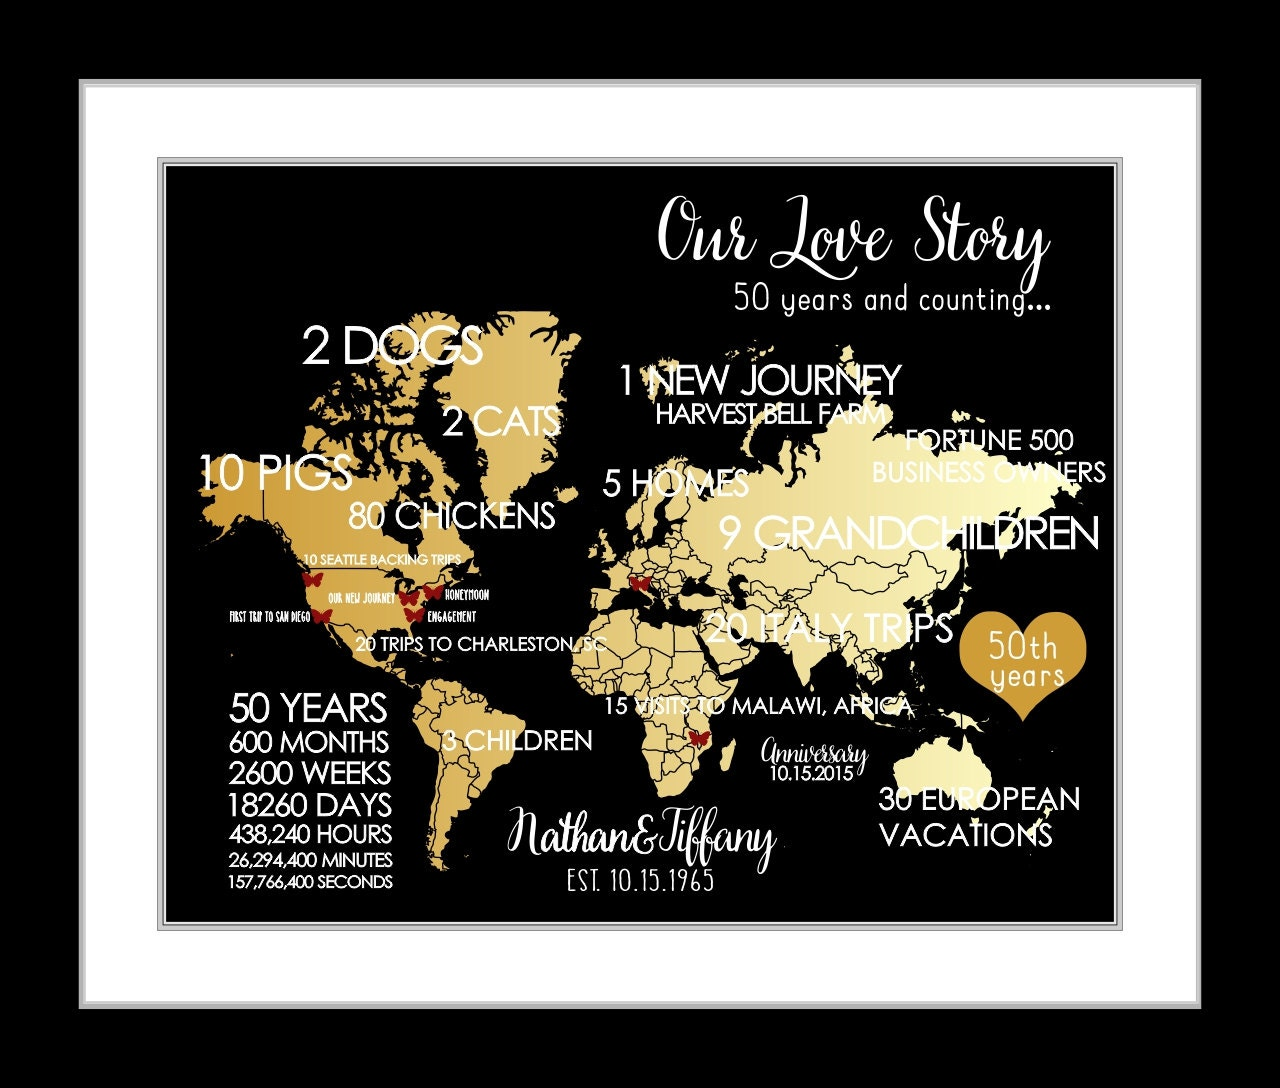 Gift Ideas For A 50th Wedding Anniversary: 50th Anniversary Gifts 50th Anniversary Gift Ideas 50th